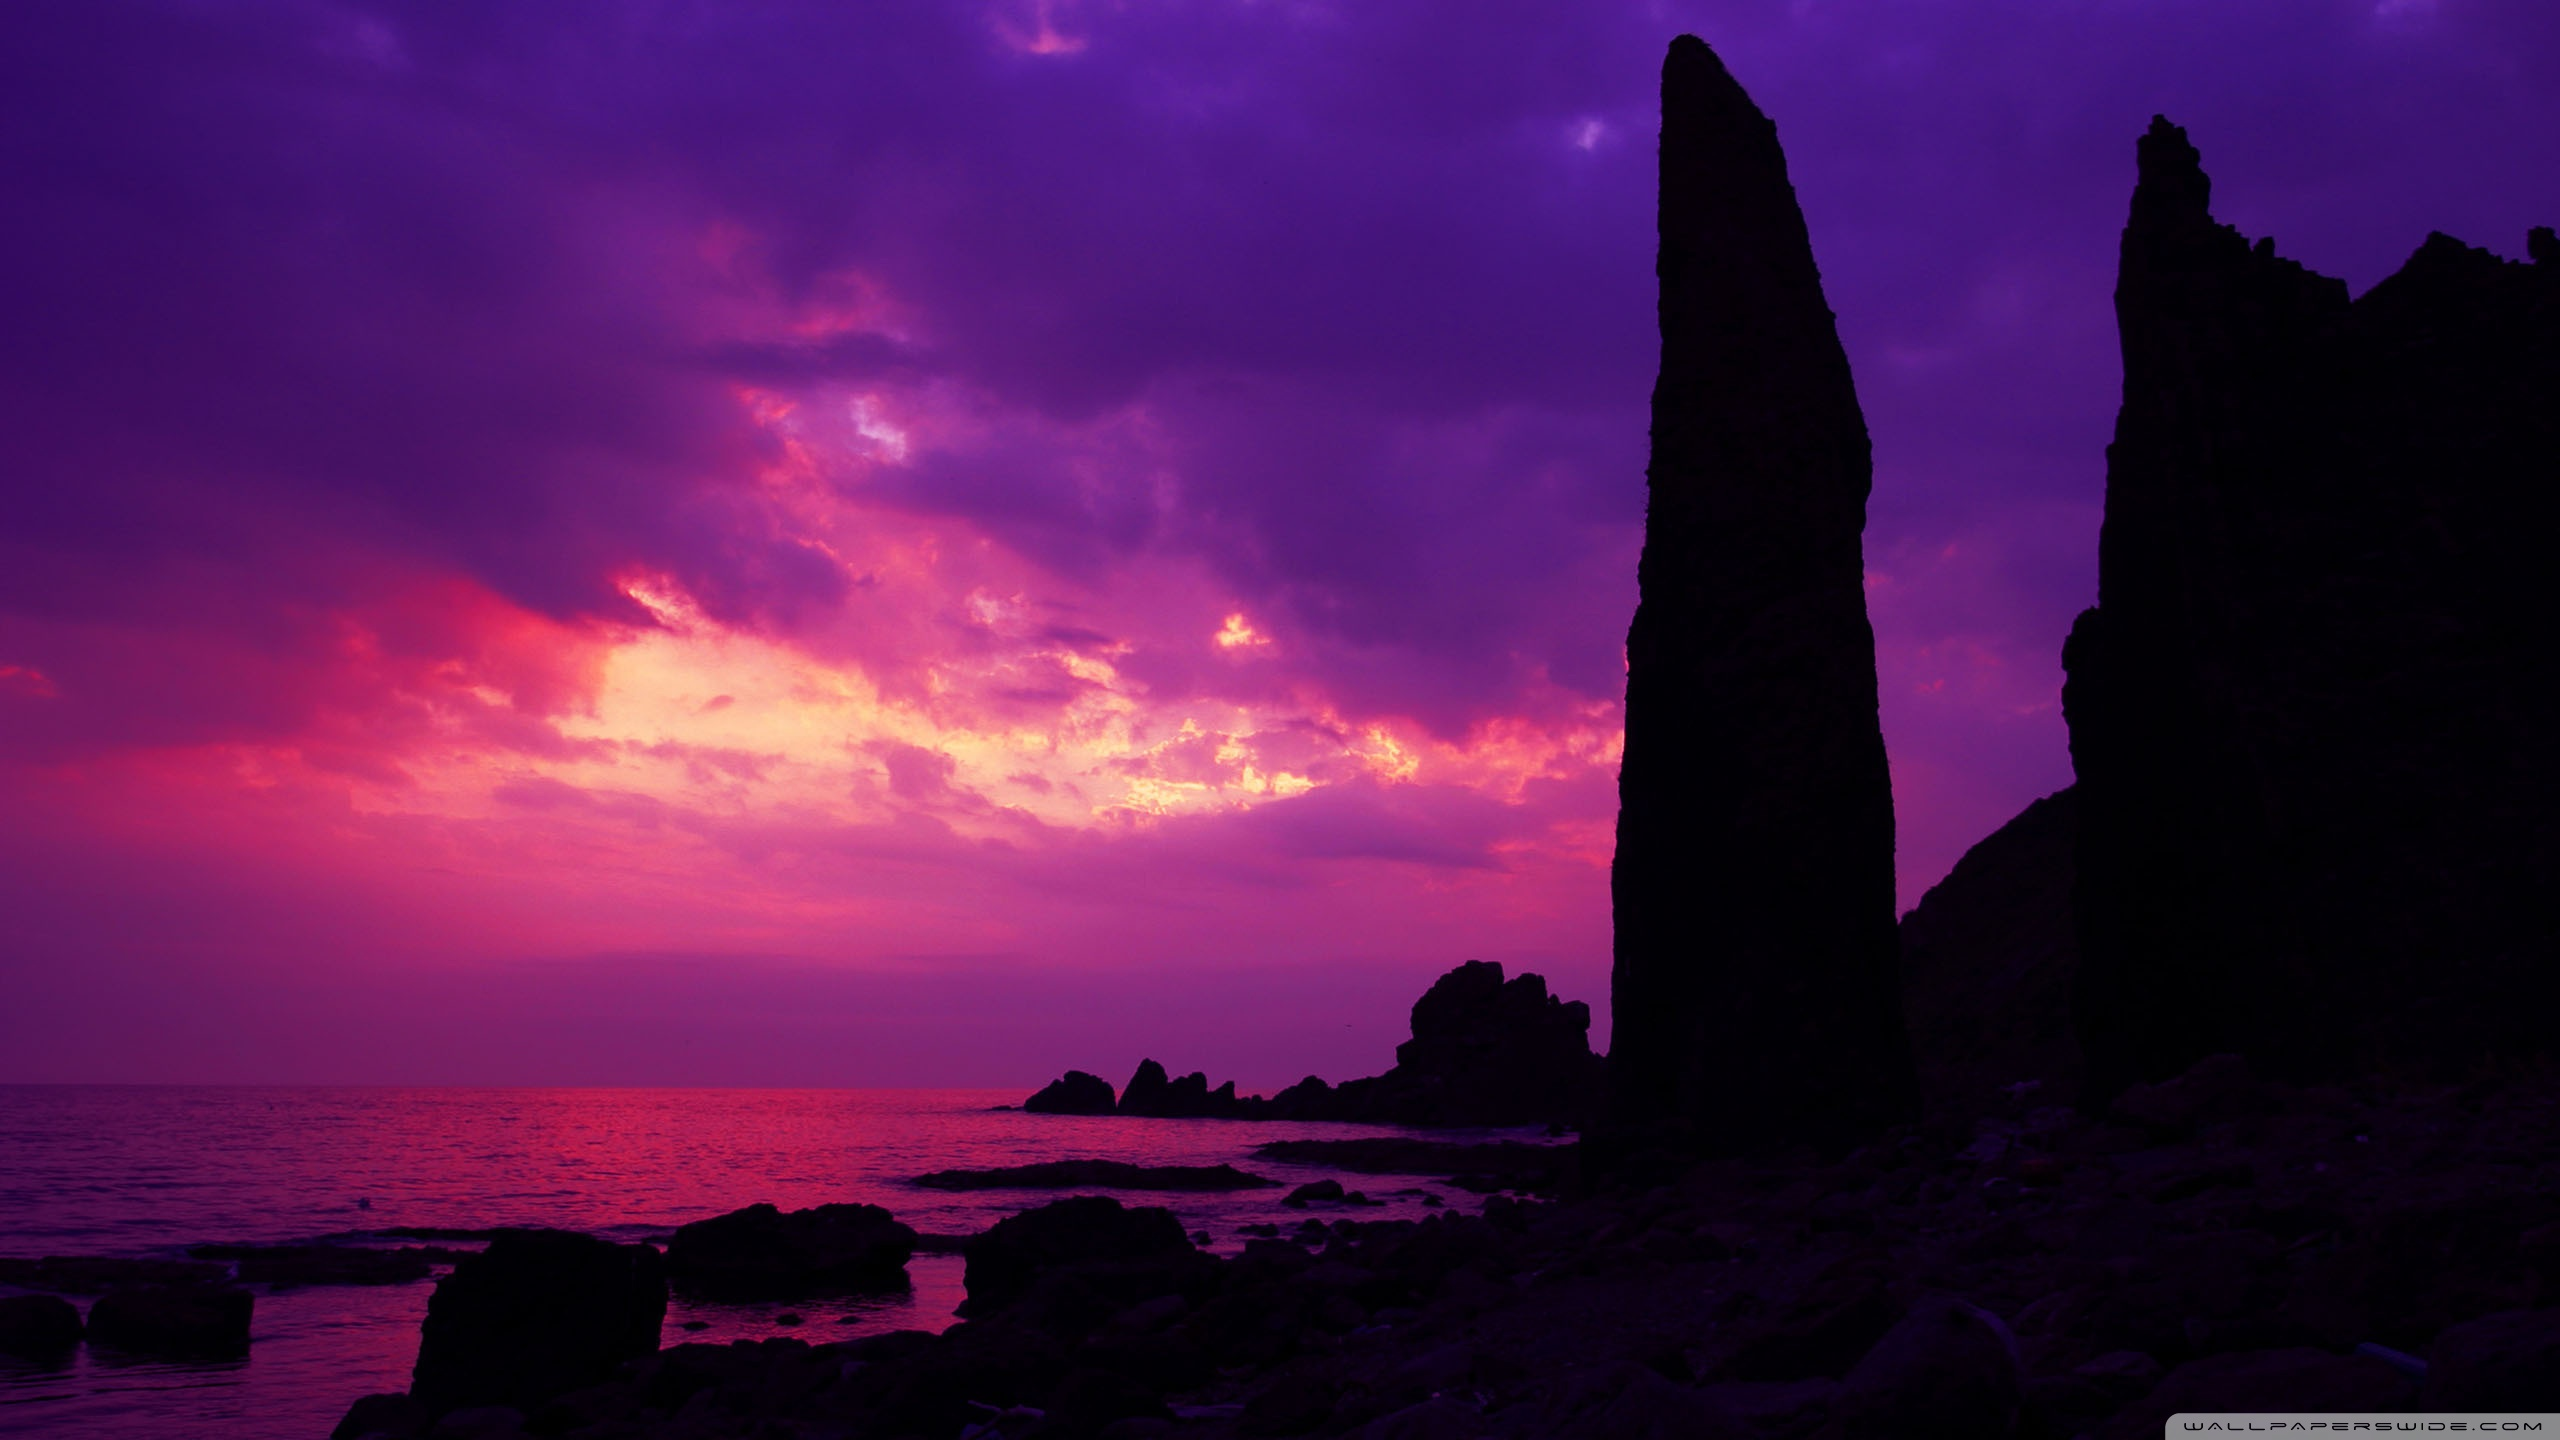 purple_twilight-wallpaper-2560x1440